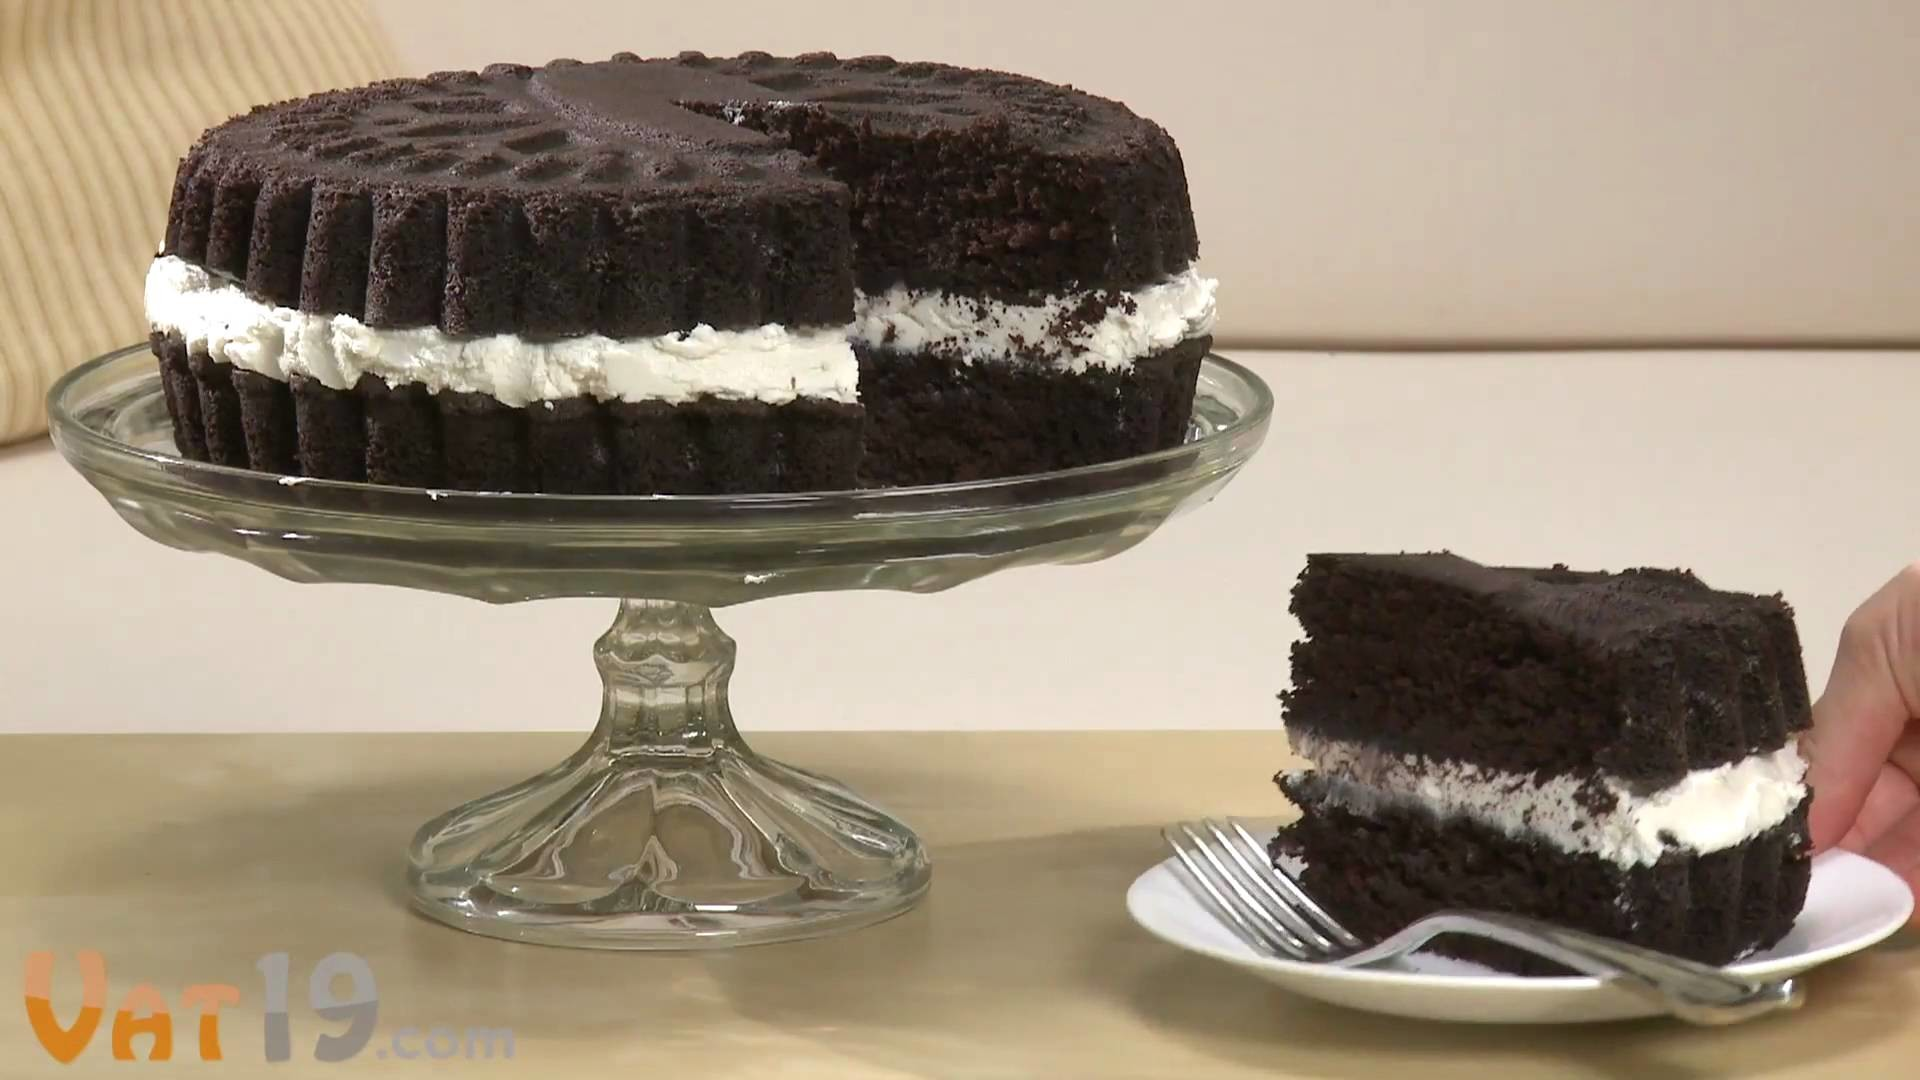 Bake a Cake that looks like a Giant Oreo